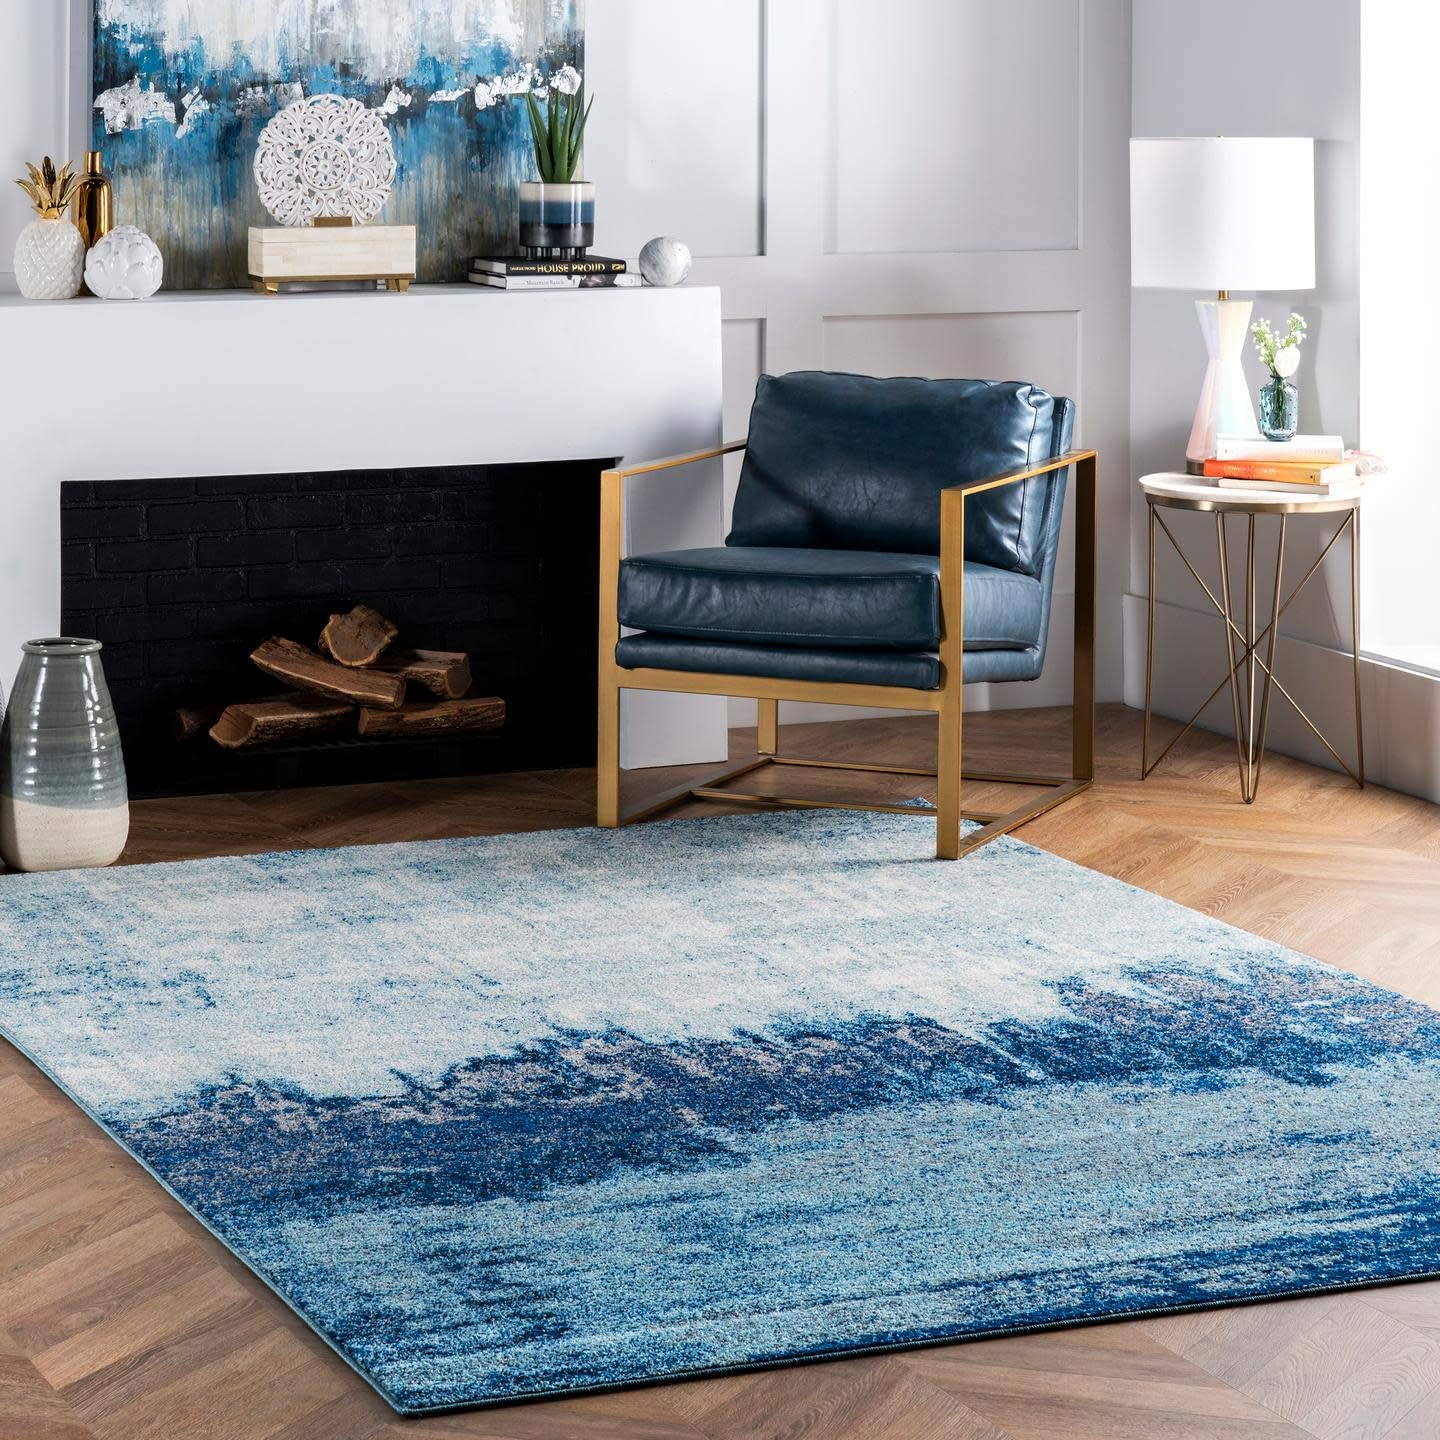 nuLOOM Alayna Abstract Area Rug 6' Square Excellent Blue ! Super beauty product restock quality top!